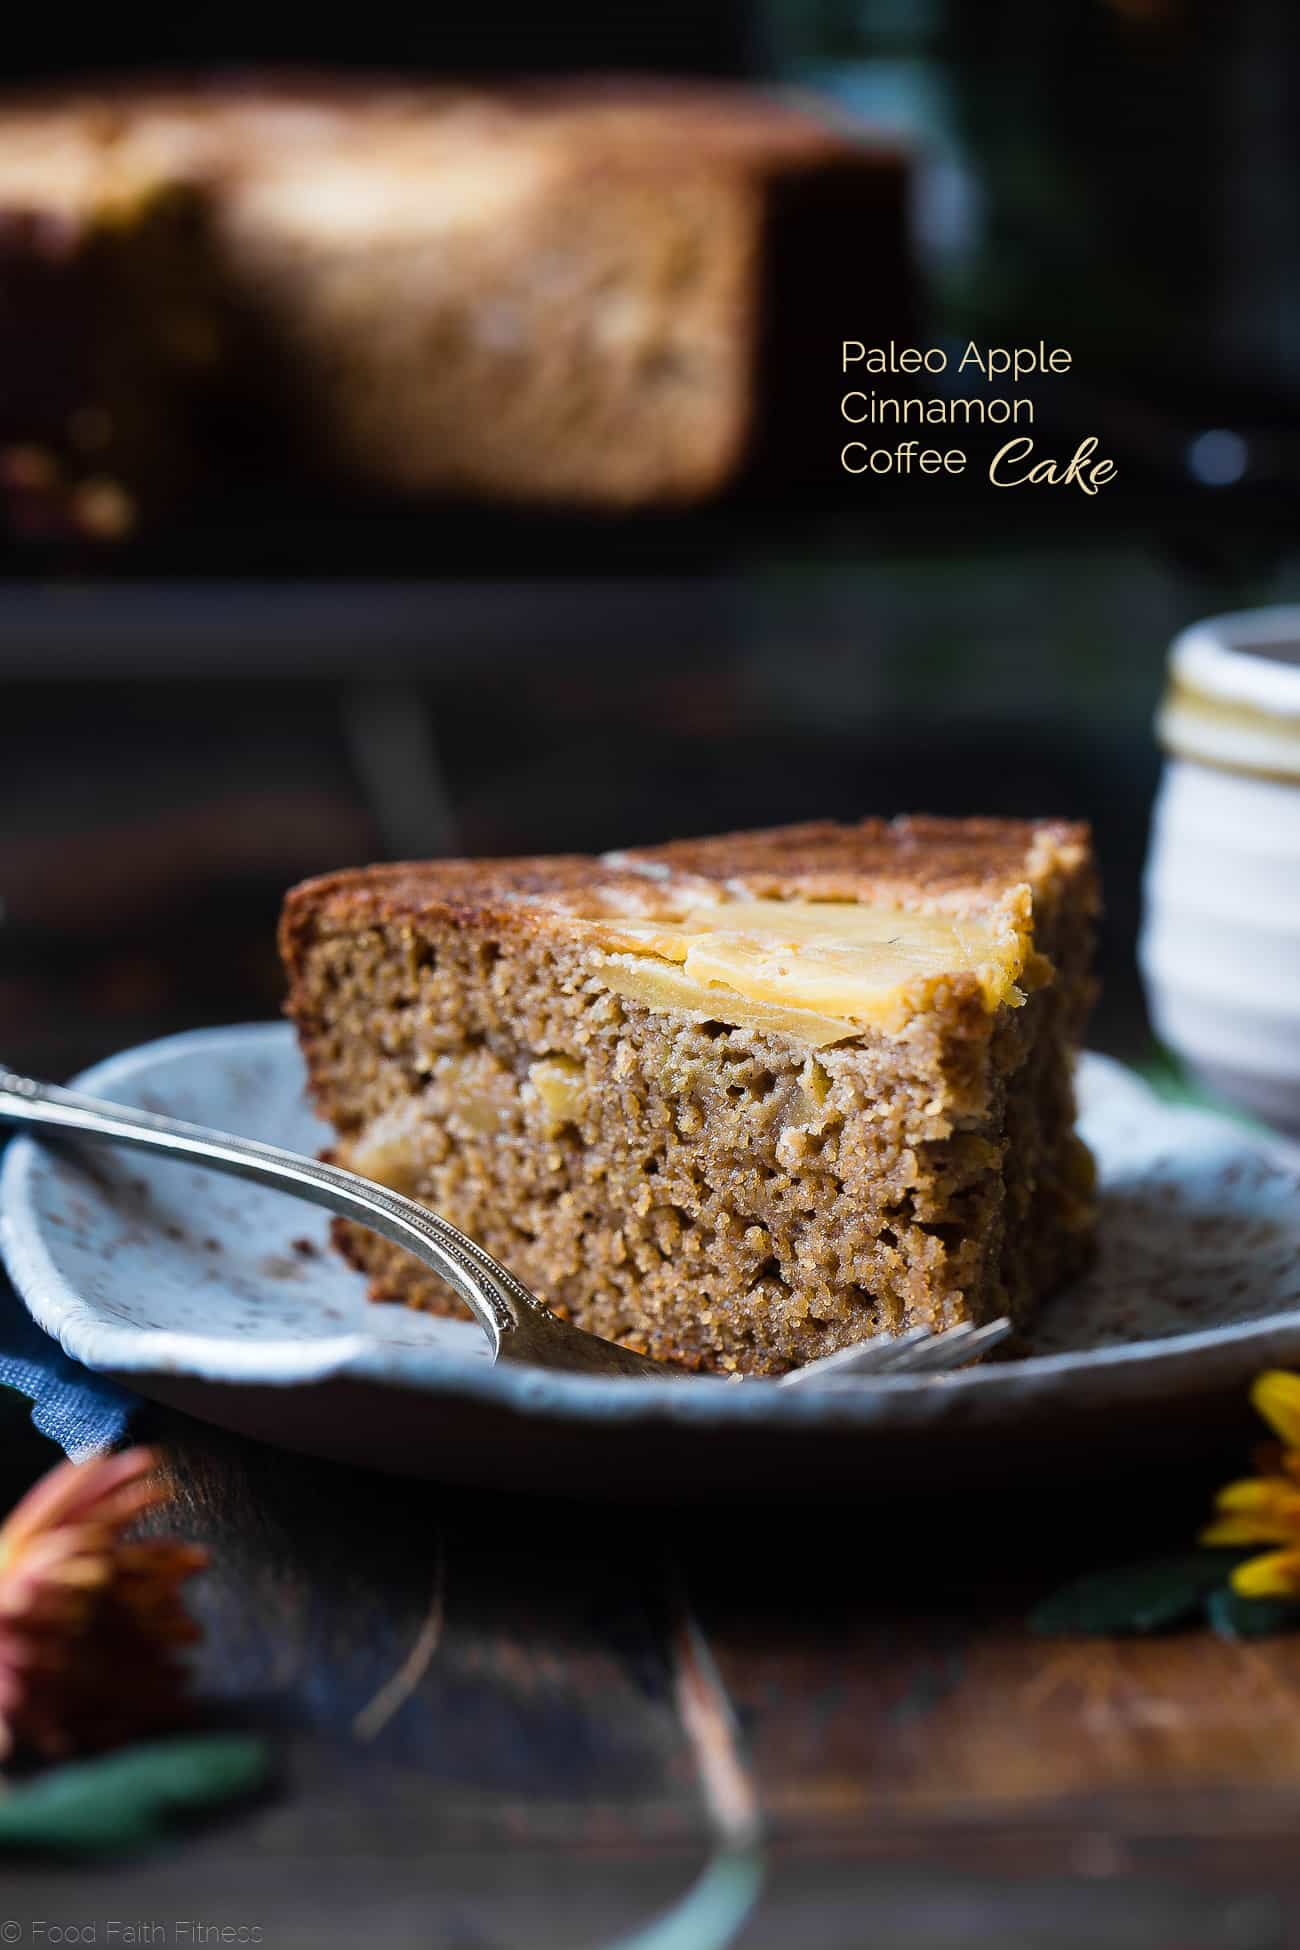 Gluten Free Apple Cinnamon Coffee Cake -This paleo apple gluten free coffee cake is made with almond flour, apples and naturally sweetened with coconut sugar. Its a healthy, paleo and freezer-friendly breakfast that you will never believe is butter and oil free! | Foodfaithfitness.com | @FoodFaithFit